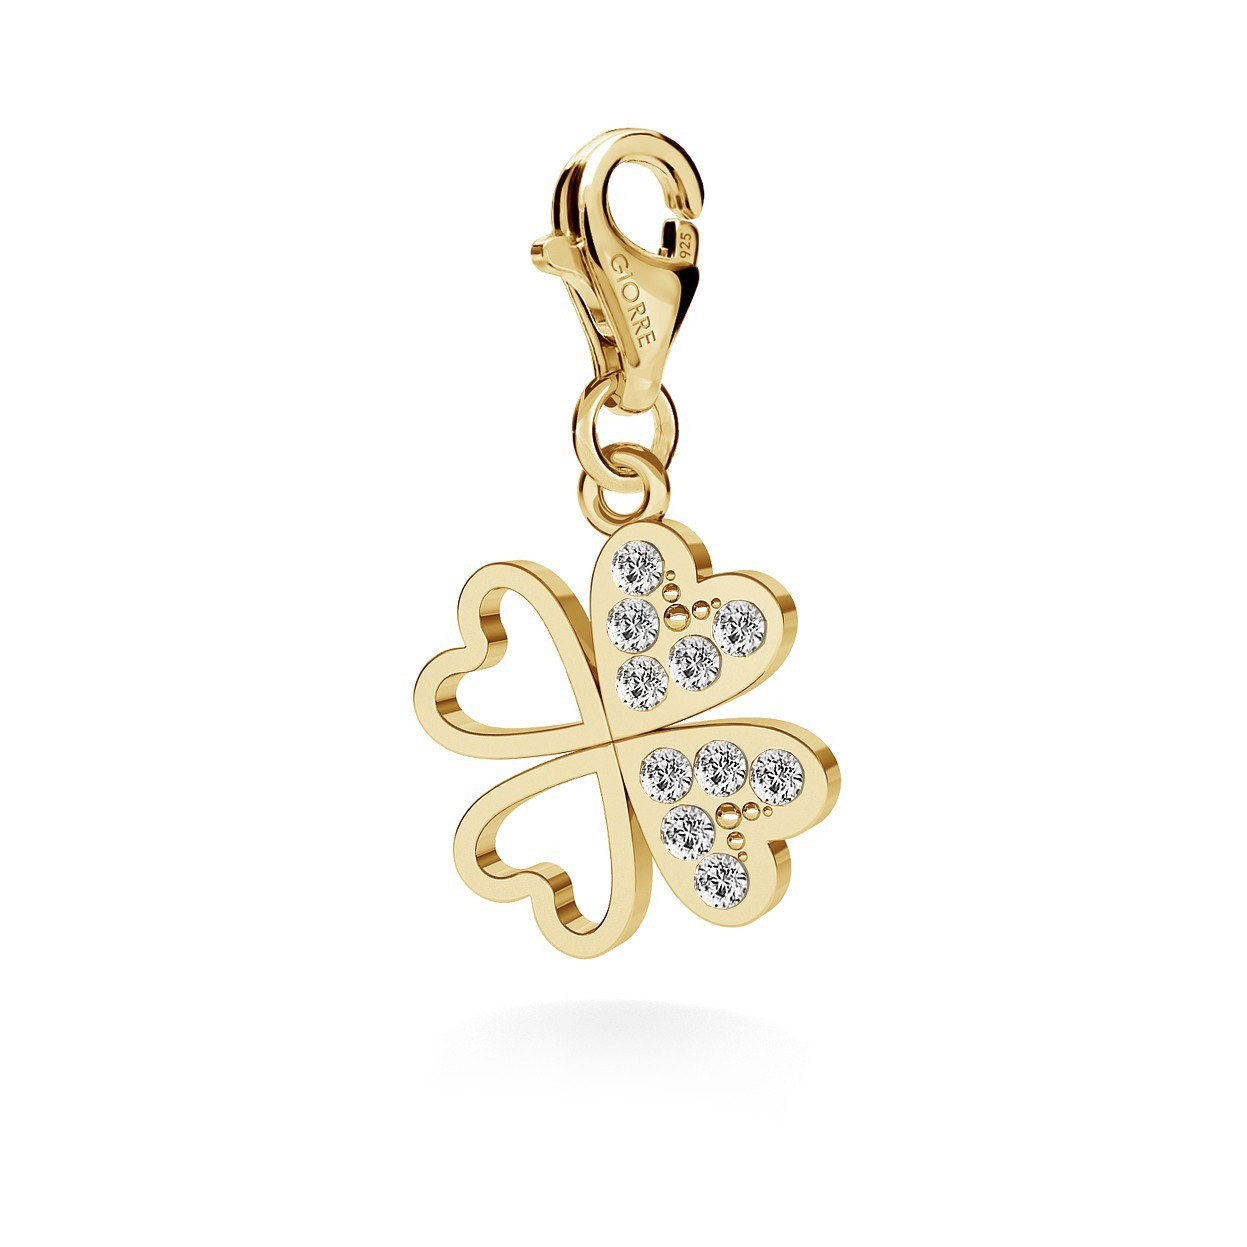 CLOVER WITH SWAROVSKI CRYSTALS, CHARMS 227